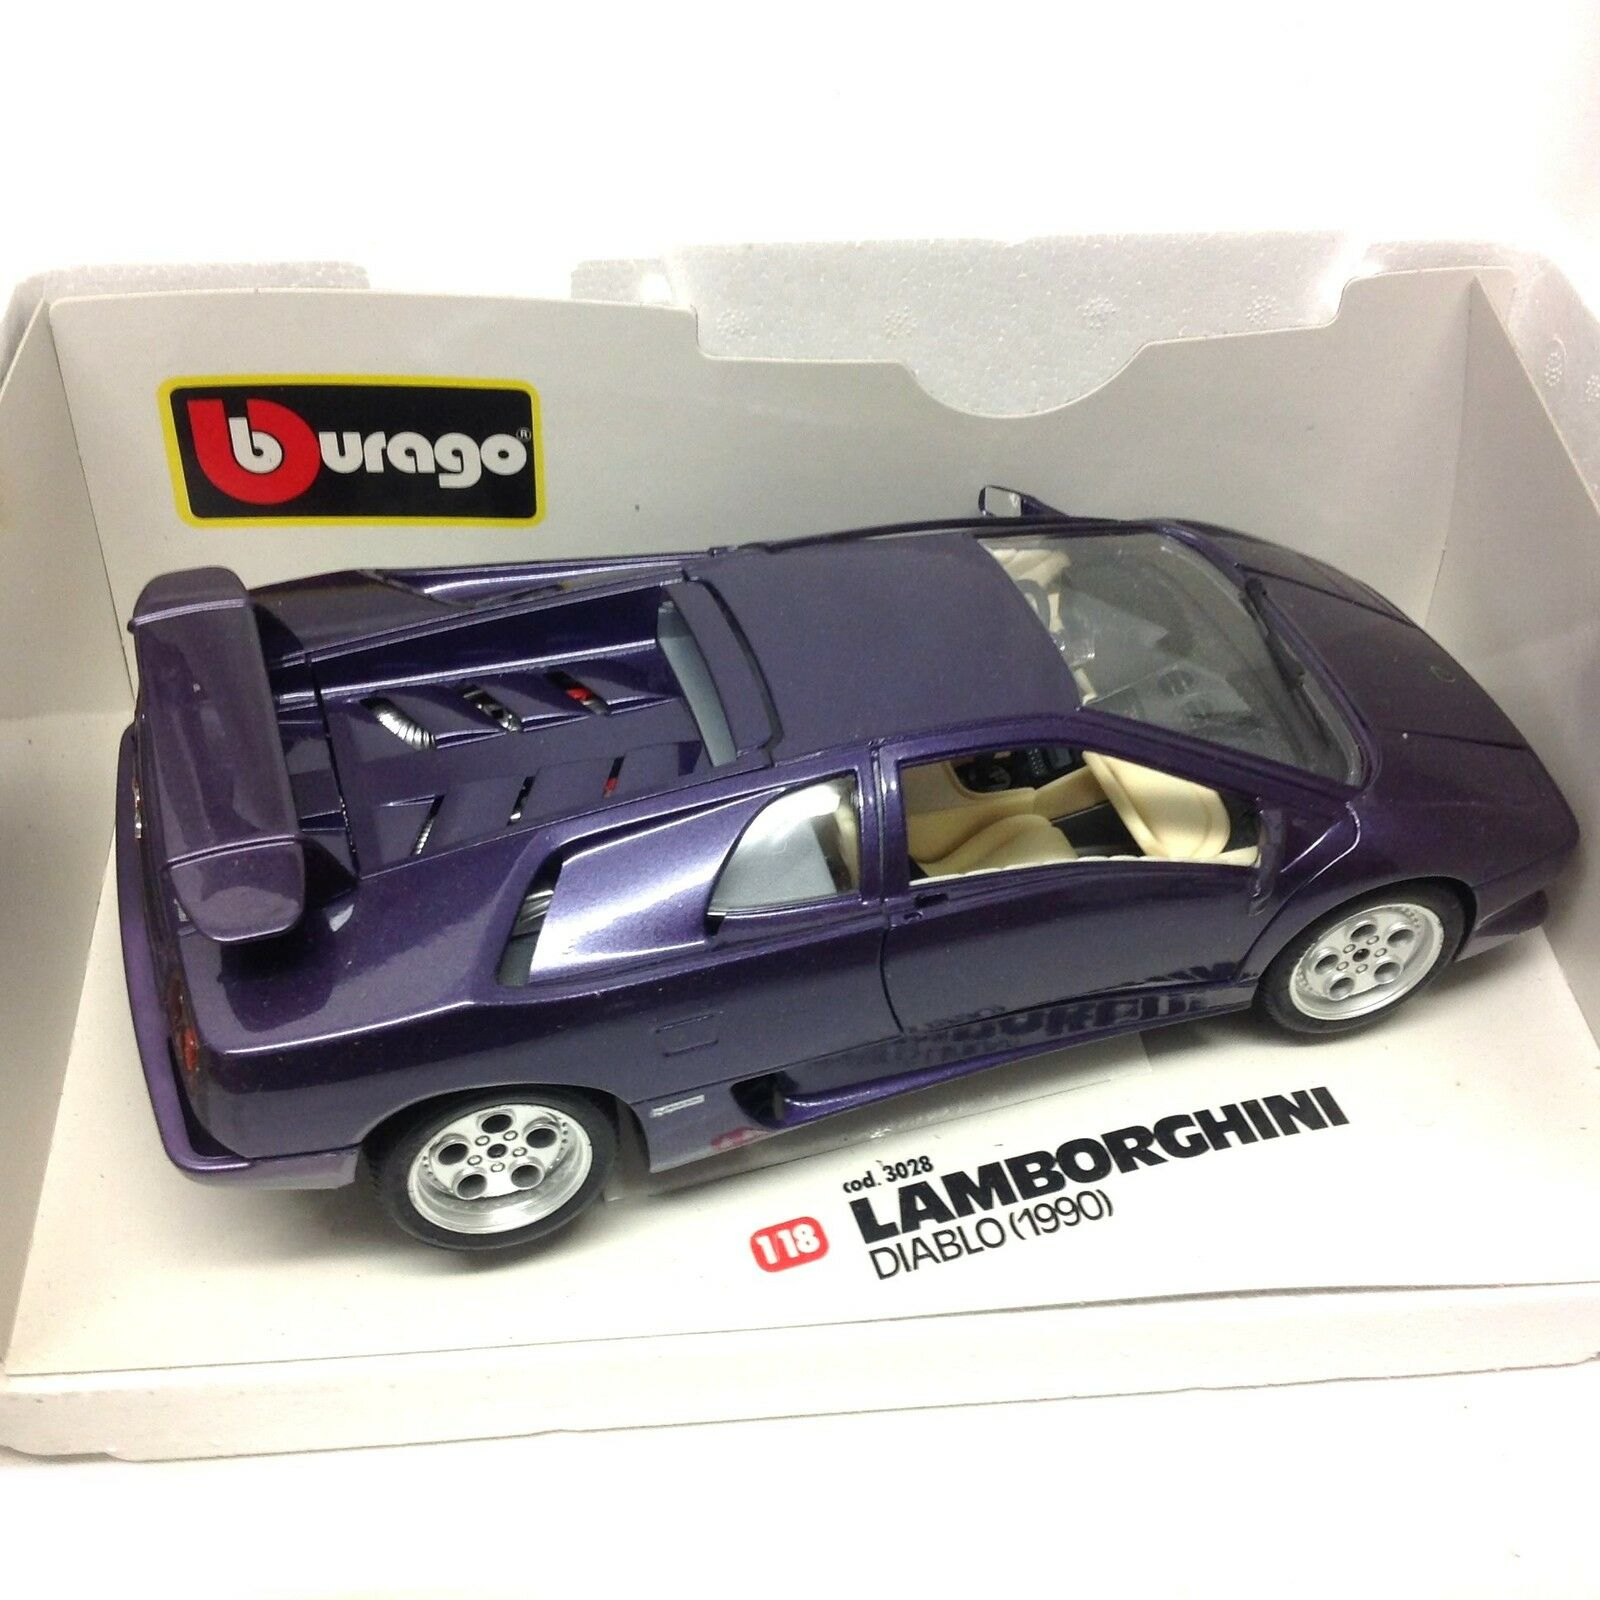 BURAGO LAMBORGHINI DIABLO DIABLO DIABLO 1990 1 18 scale diecast car model, no Box, fast need cb5914